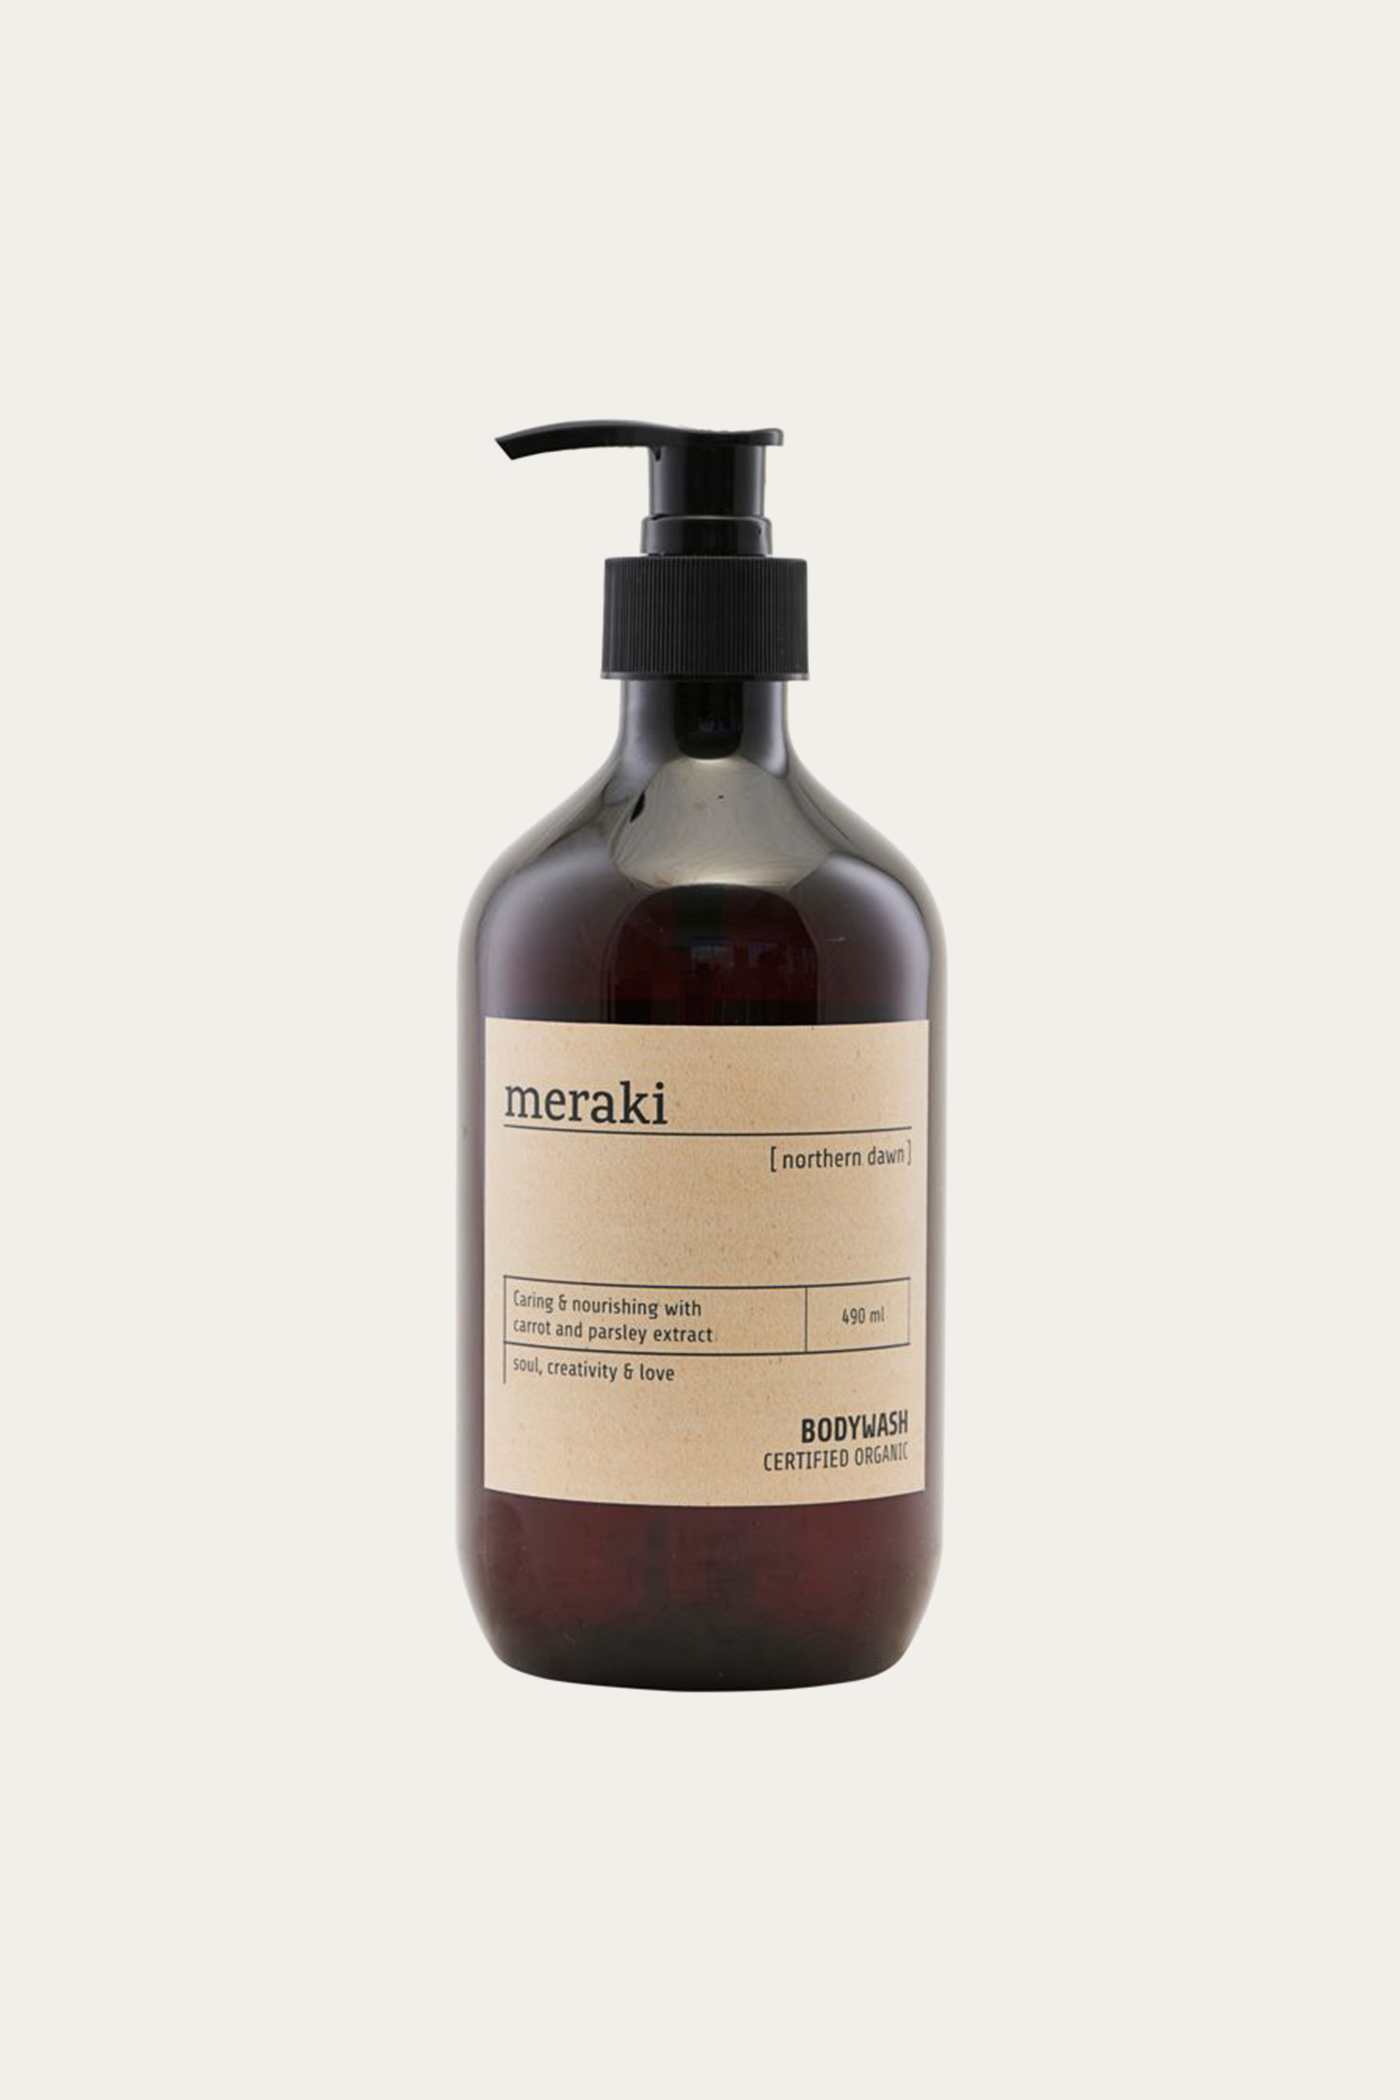 Meraki Body Wash